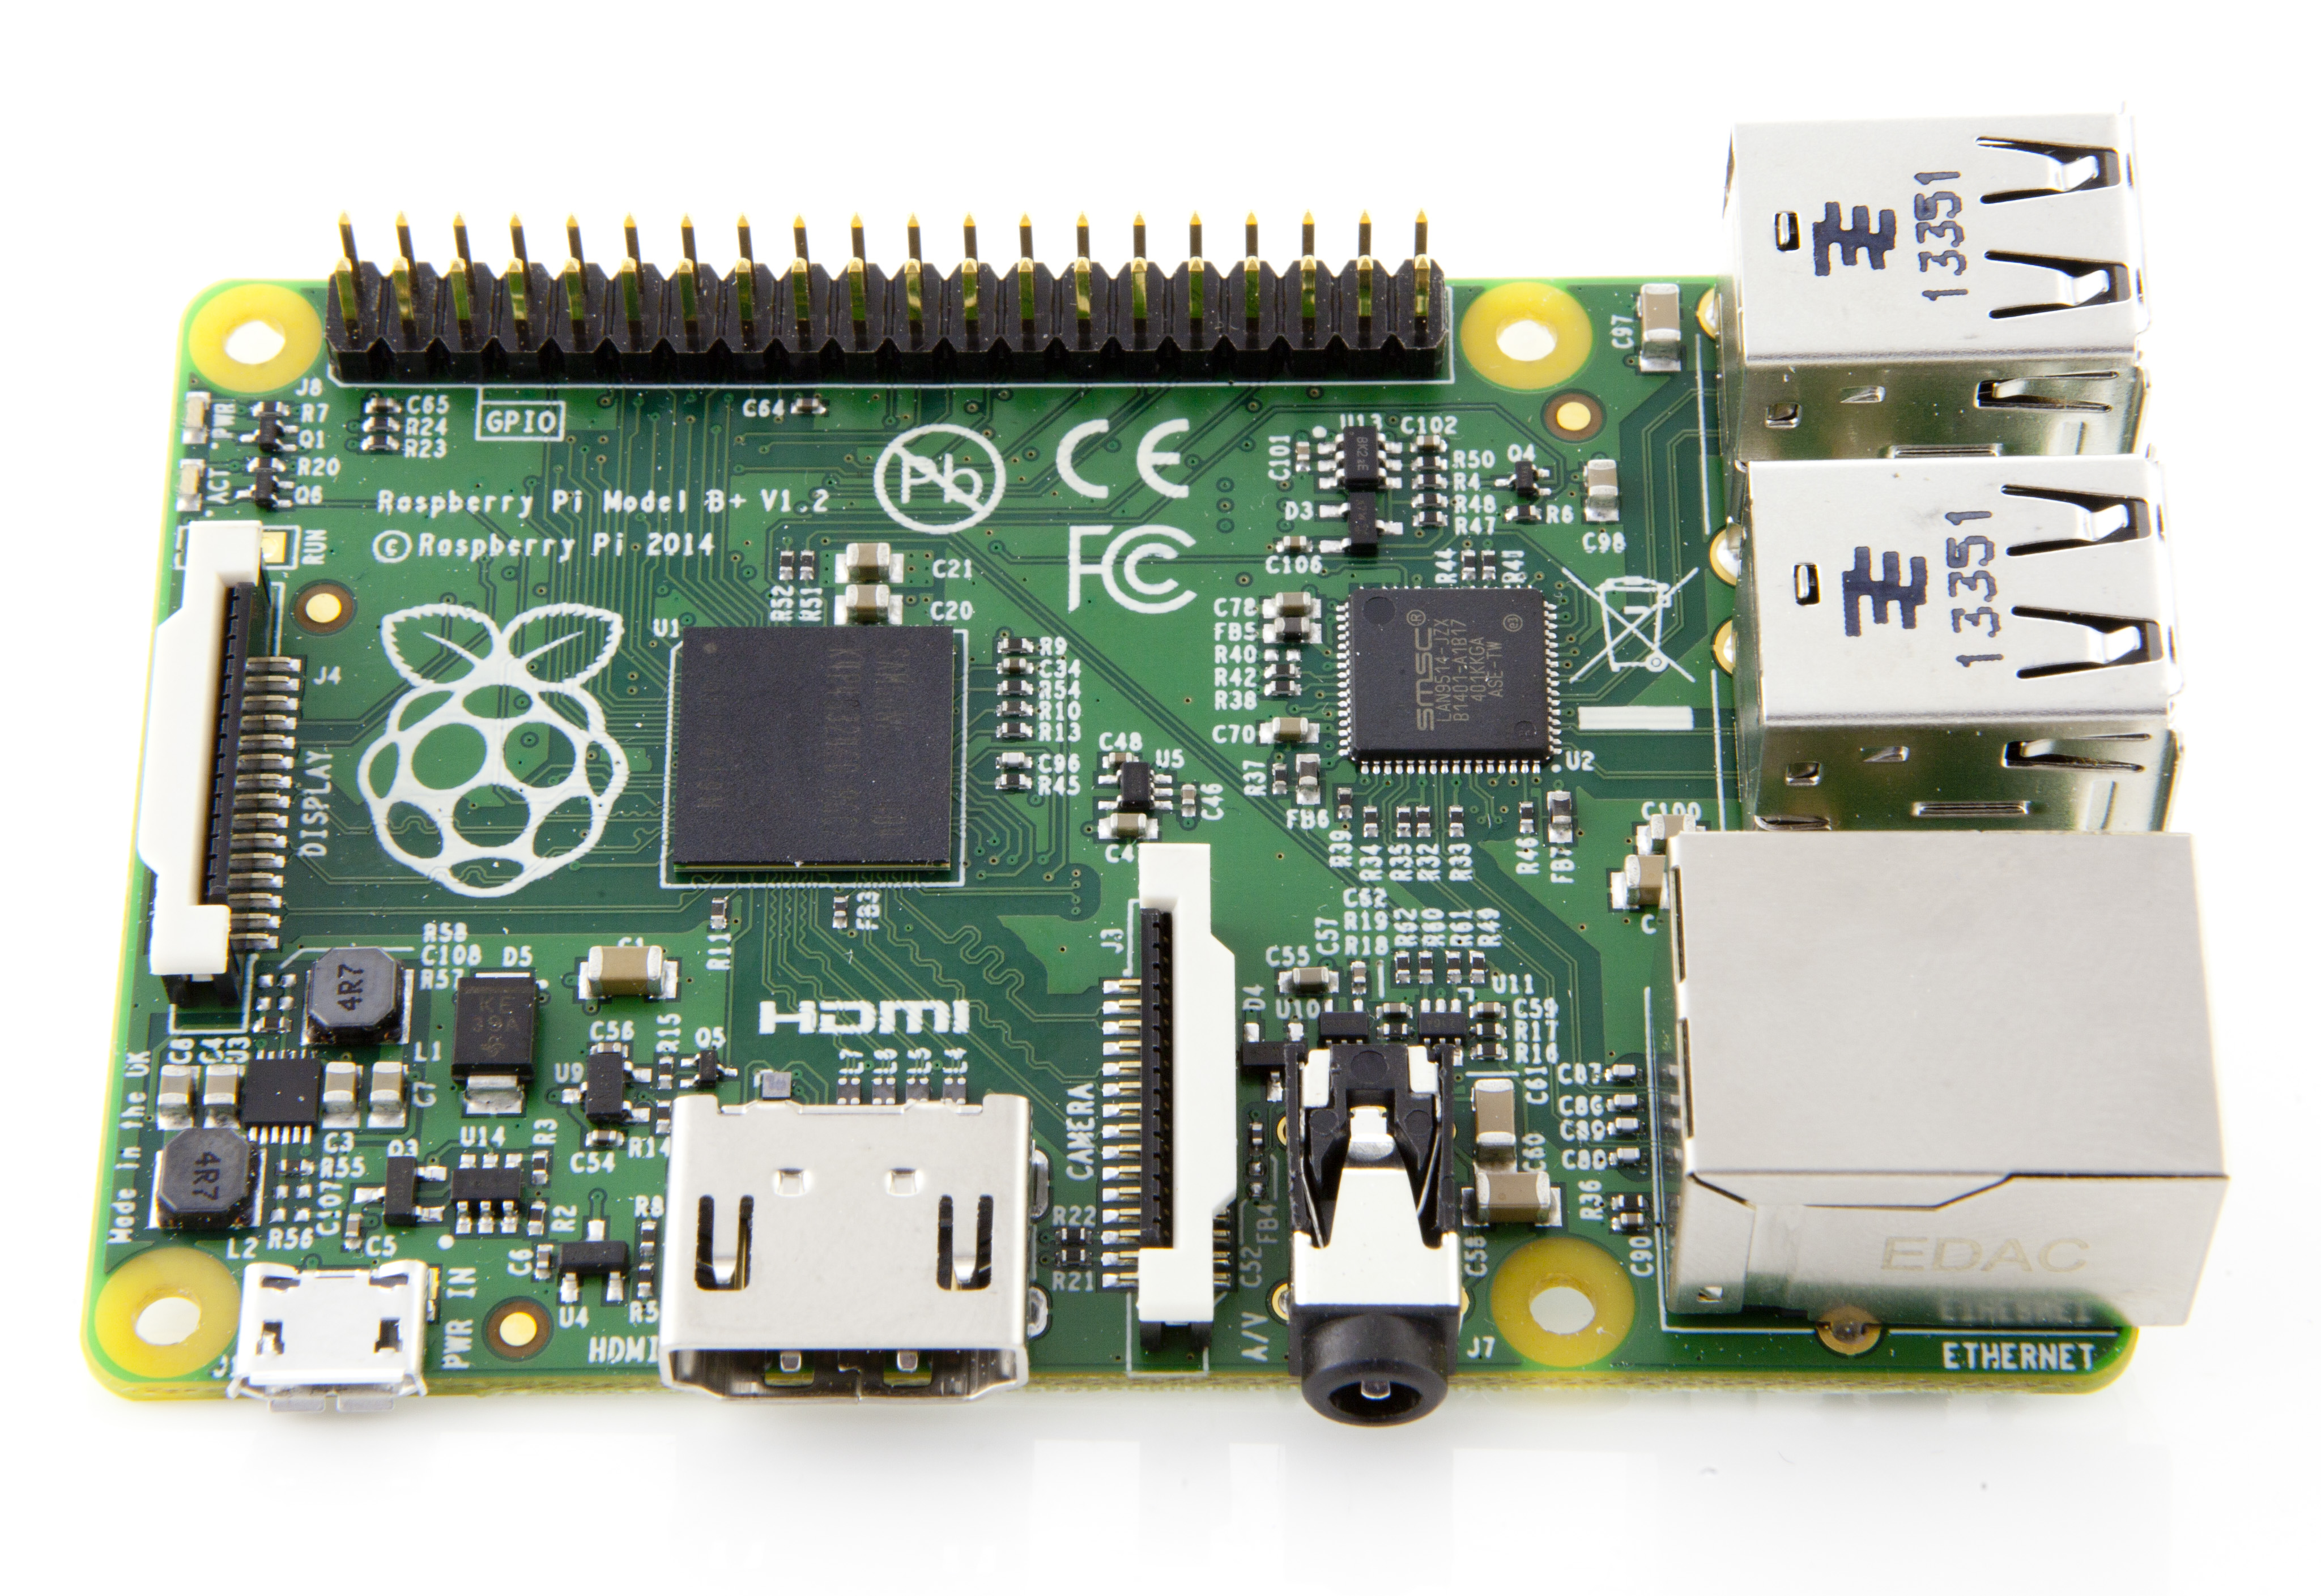 Raspberry Pi - The idea behind a tiny and affordable computer for kids came in 2006, when Eben Upton, Rob Mullins, Jack Lang and Alan Mycroft, based at the University of Cambridge's Computer Laboratory, became concerned about the year‑on-year decline in the numbers and skills levels of the A‑Level students applying to read Computer Science.